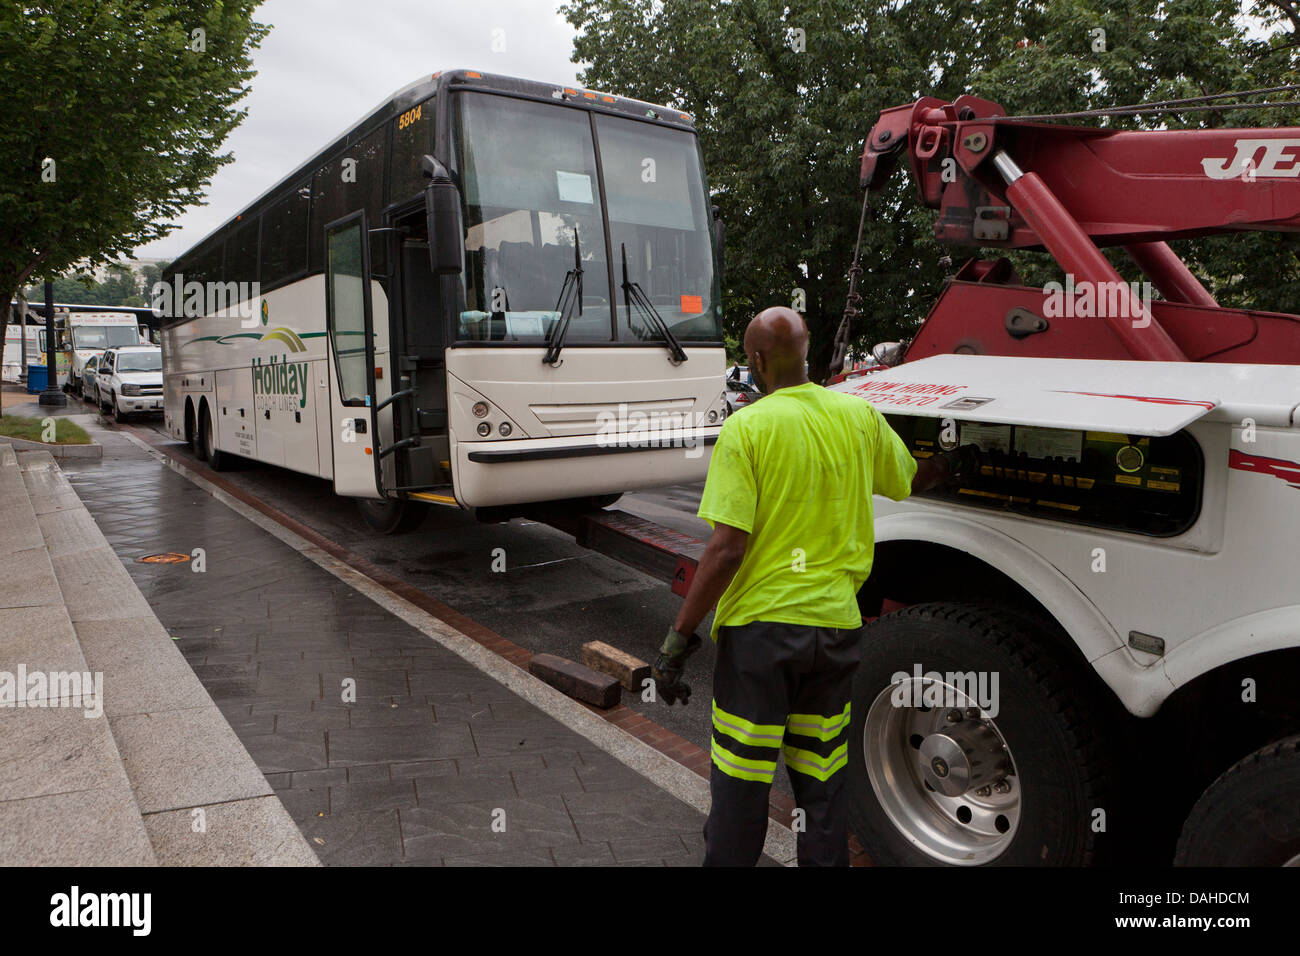 Disabled tour bus getting towed - Stock Image